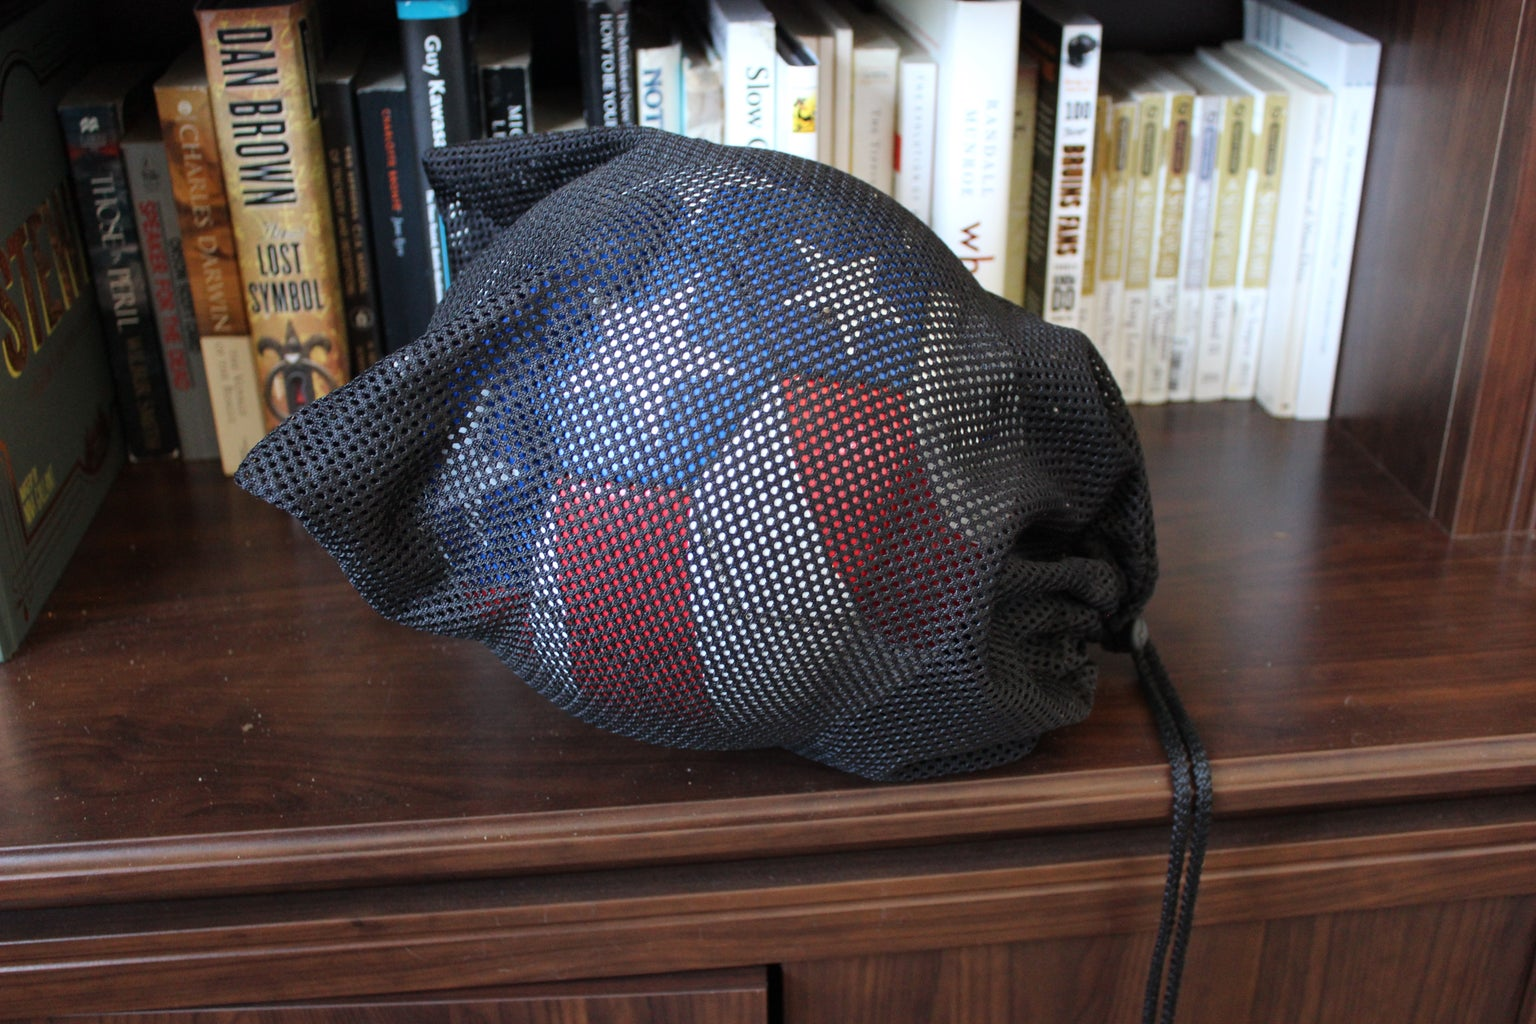 Ball in a Bag